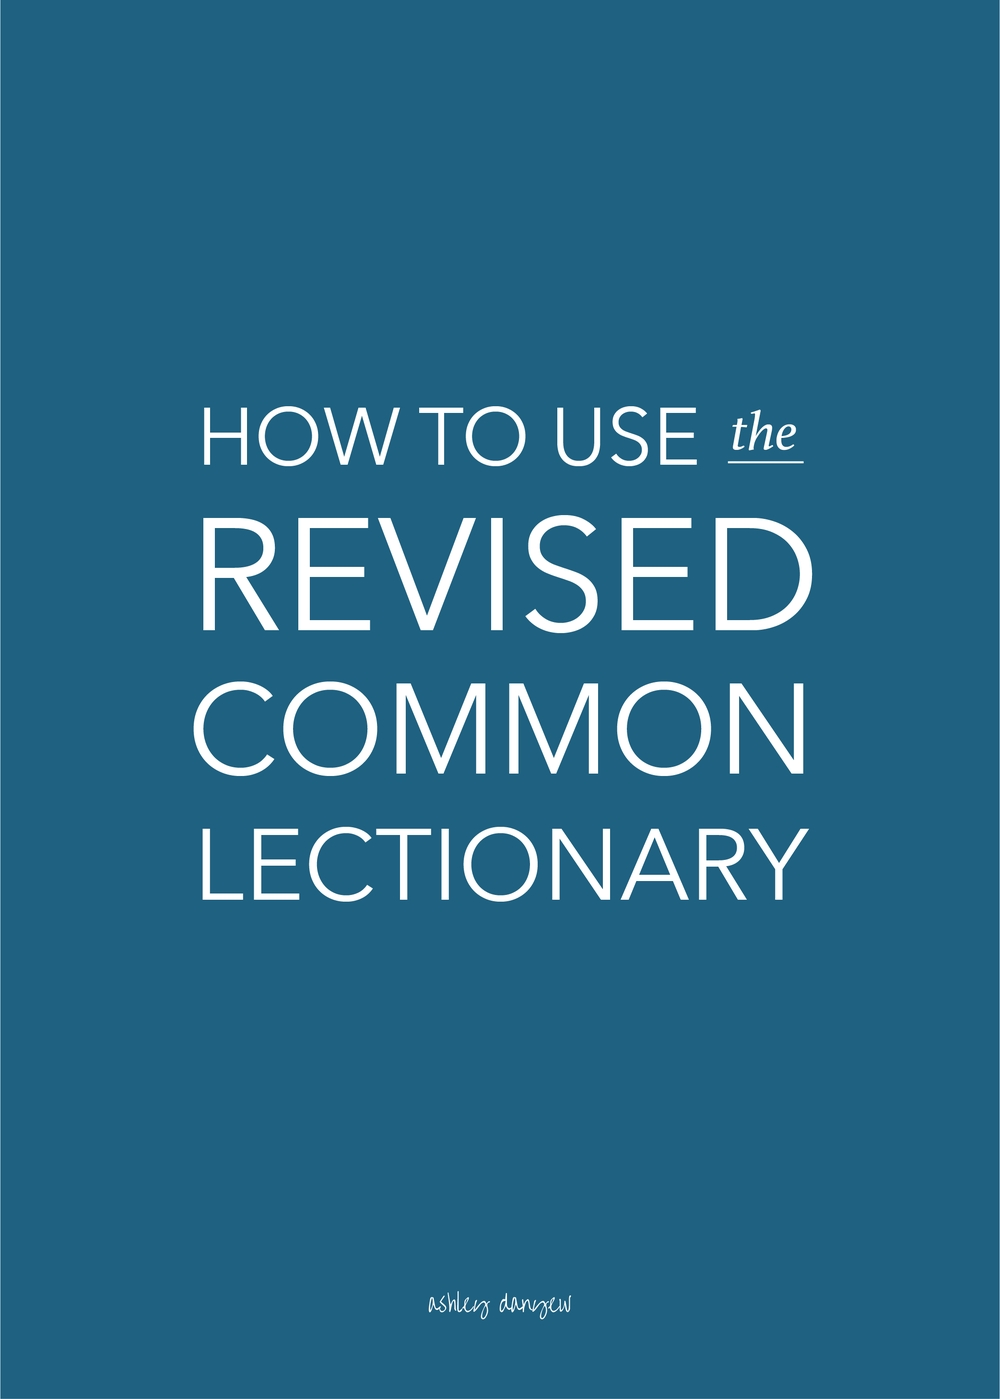 How To Use The Revised Common Lectionary | Ashley Danyew  Revised Methodist Lectionary